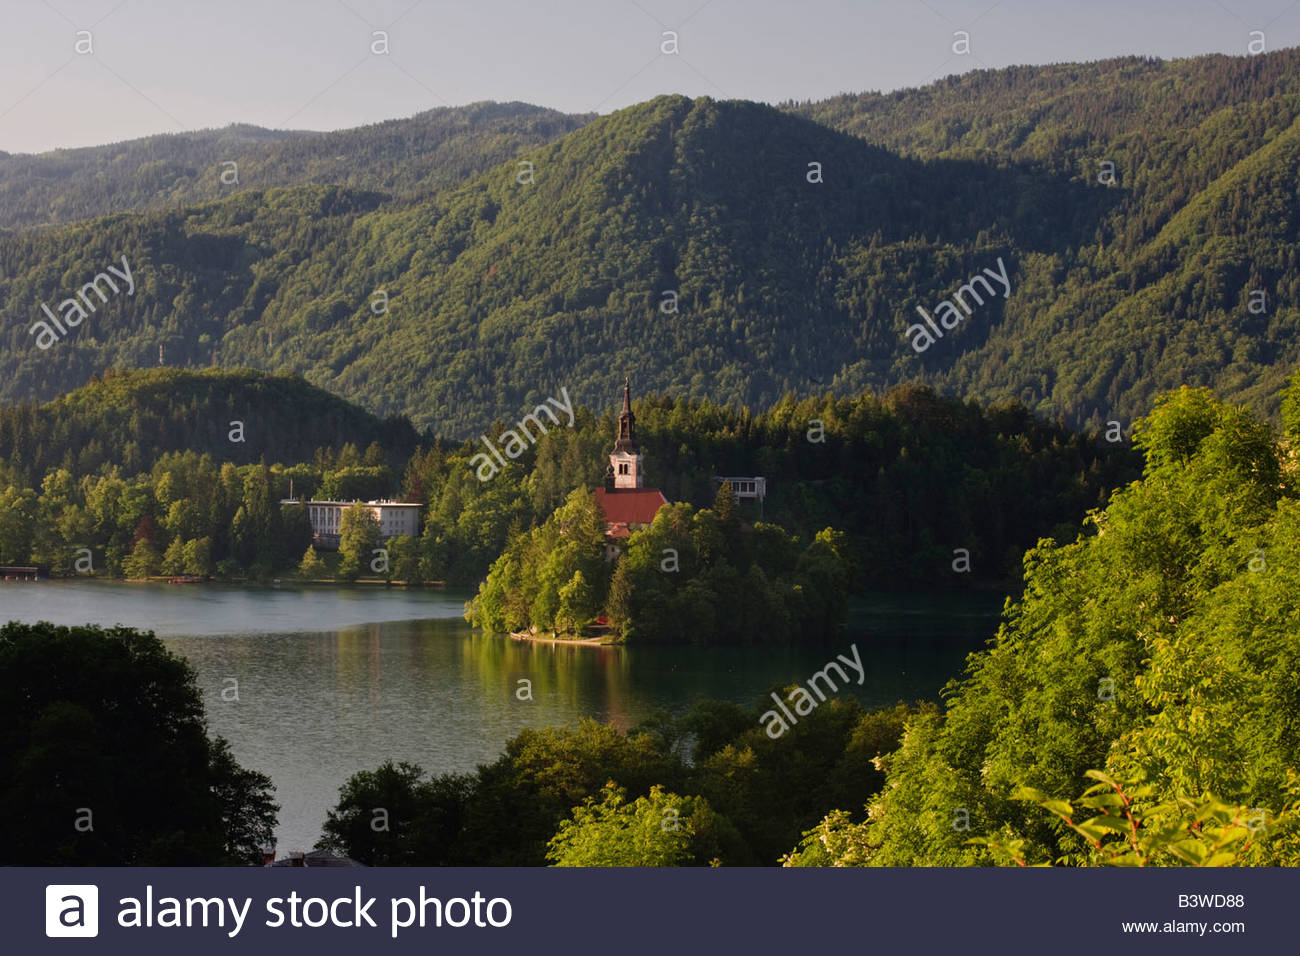 Lake Bled and the Assumption of Mary's Pilgrimage Church, Bled Slovenia - Stock Image